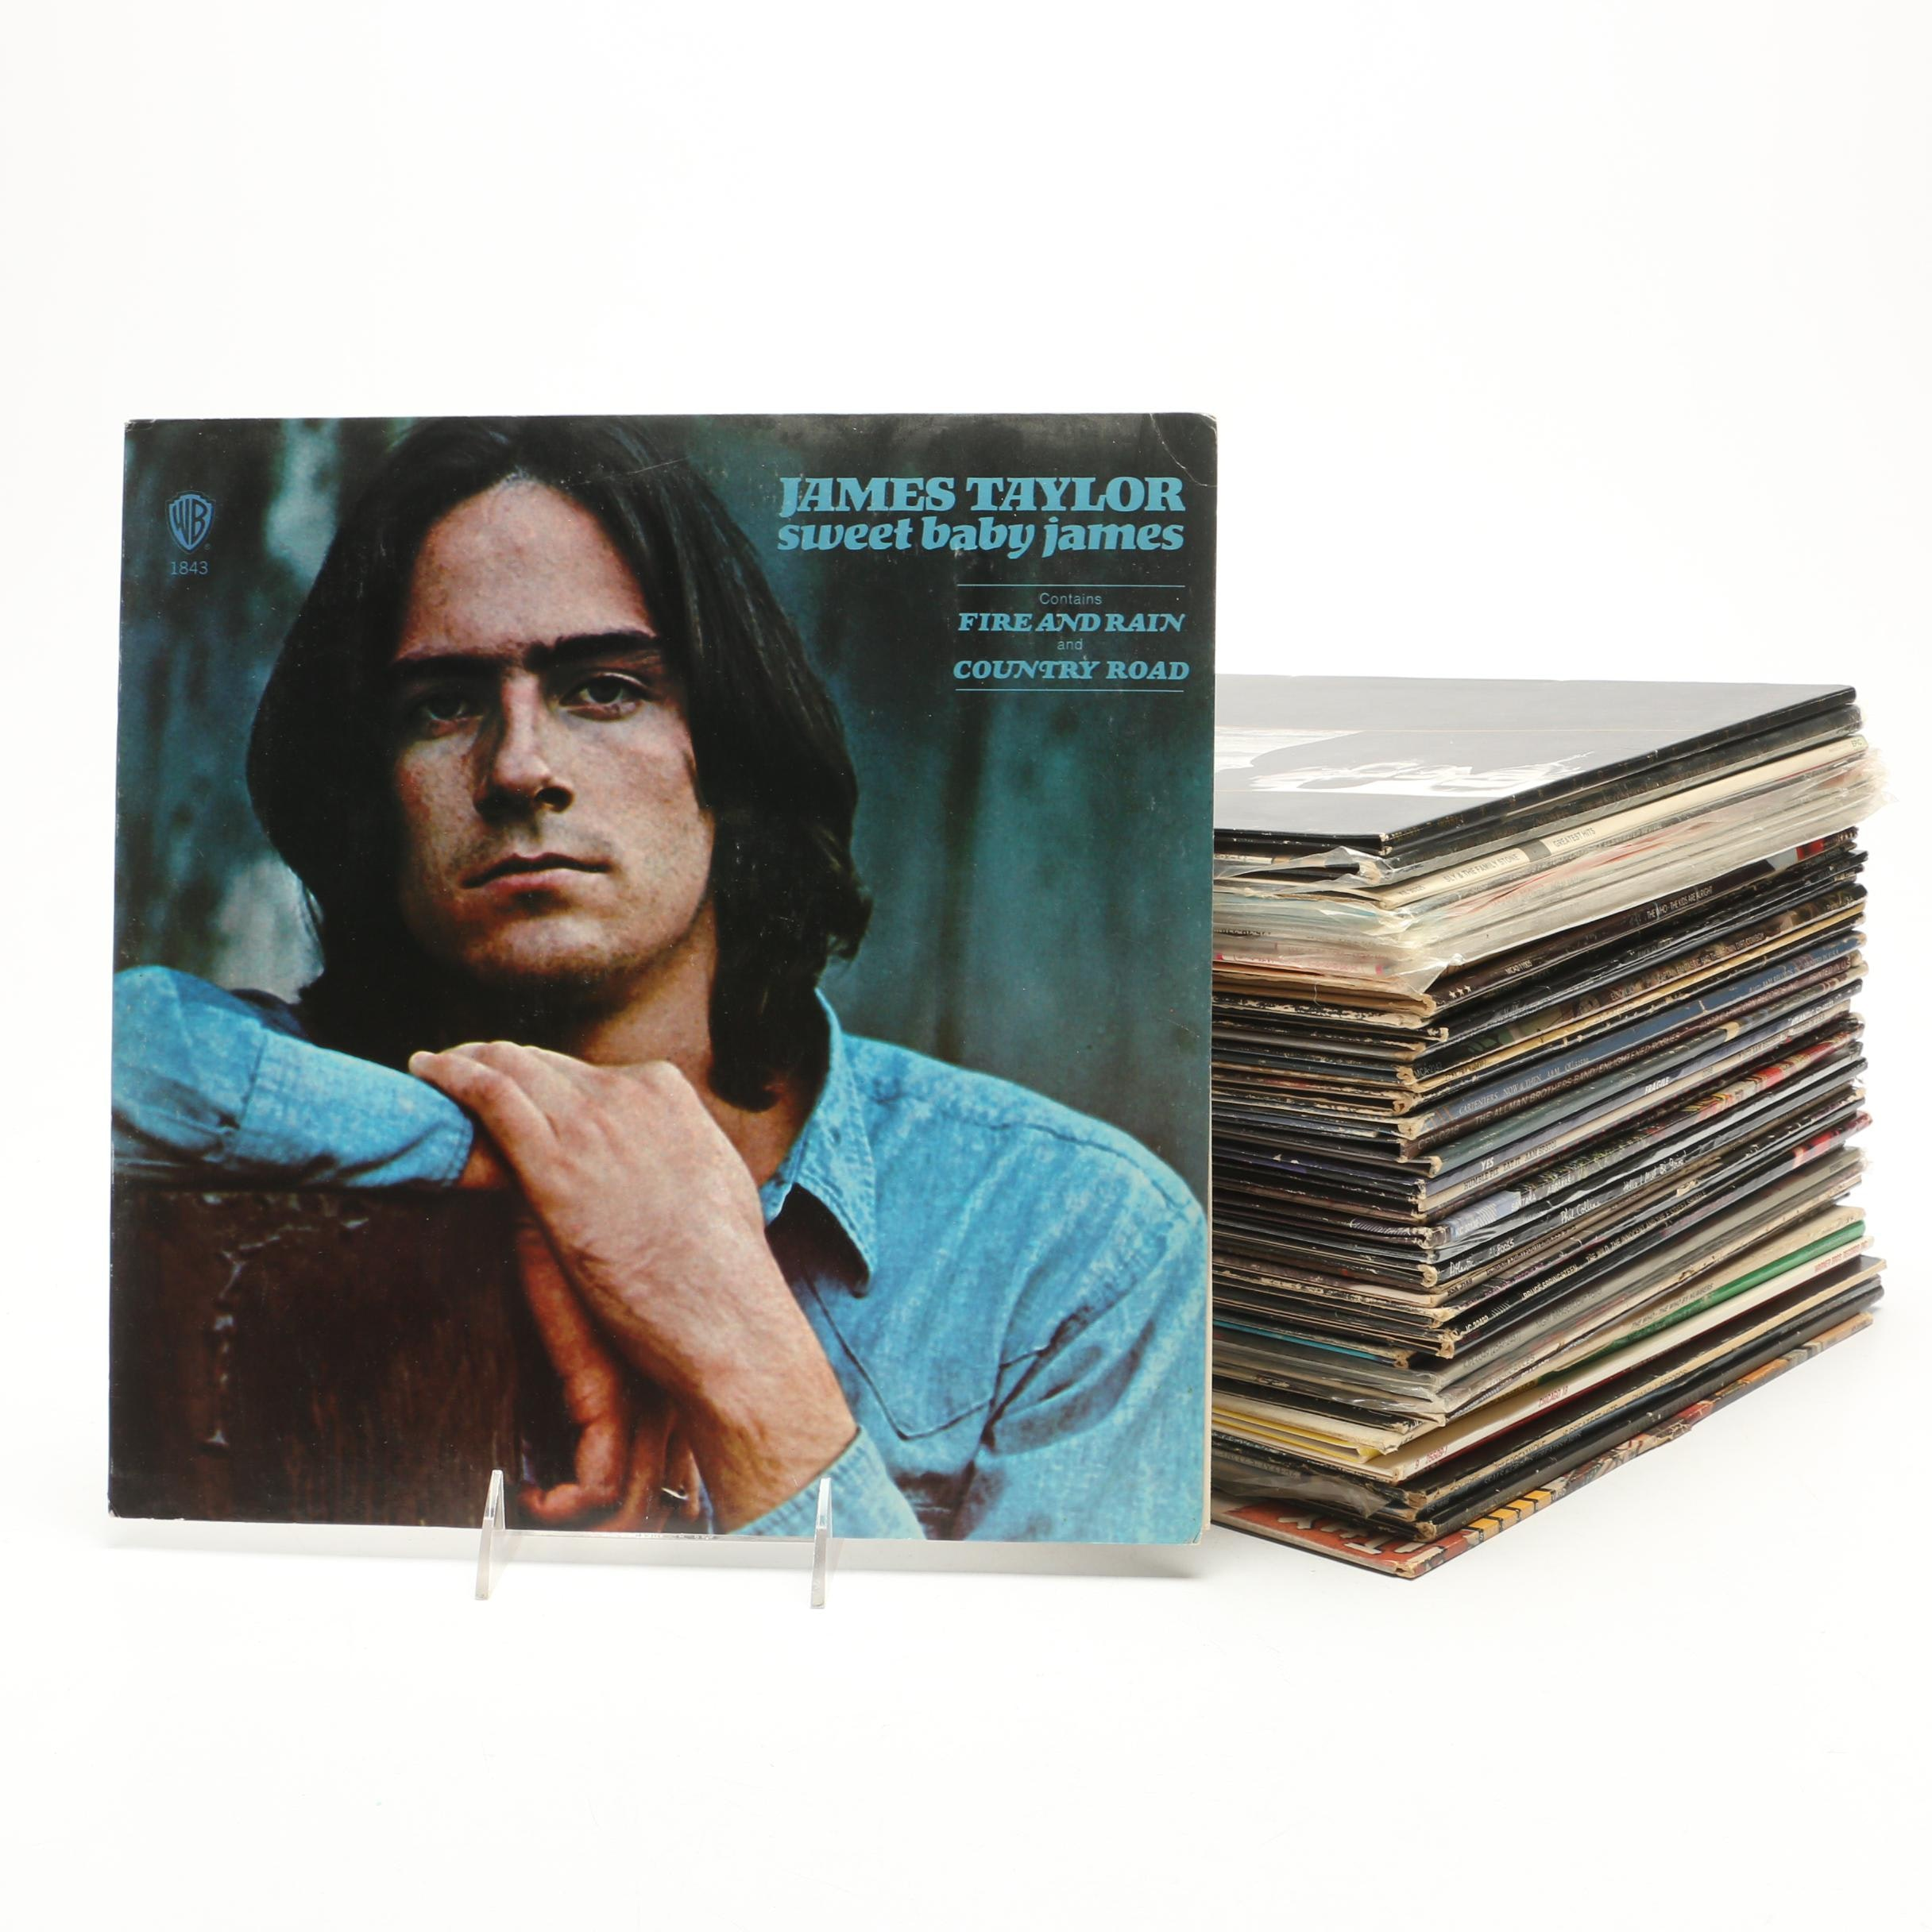 Records Including James Taylor, The Who, Sly and the Family Stone and More